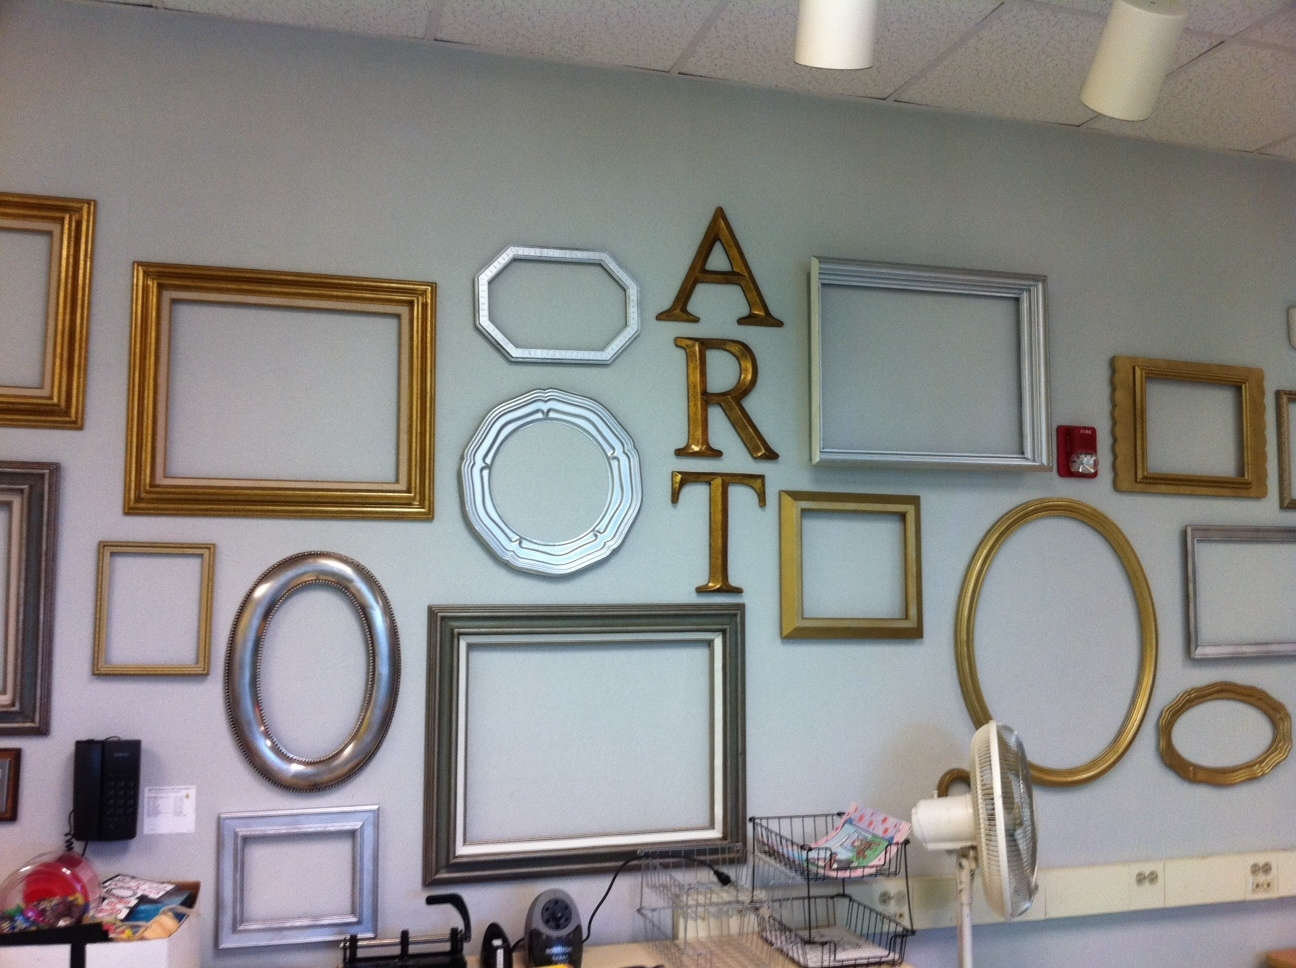 art frames were hung during the summer and they await to be filled